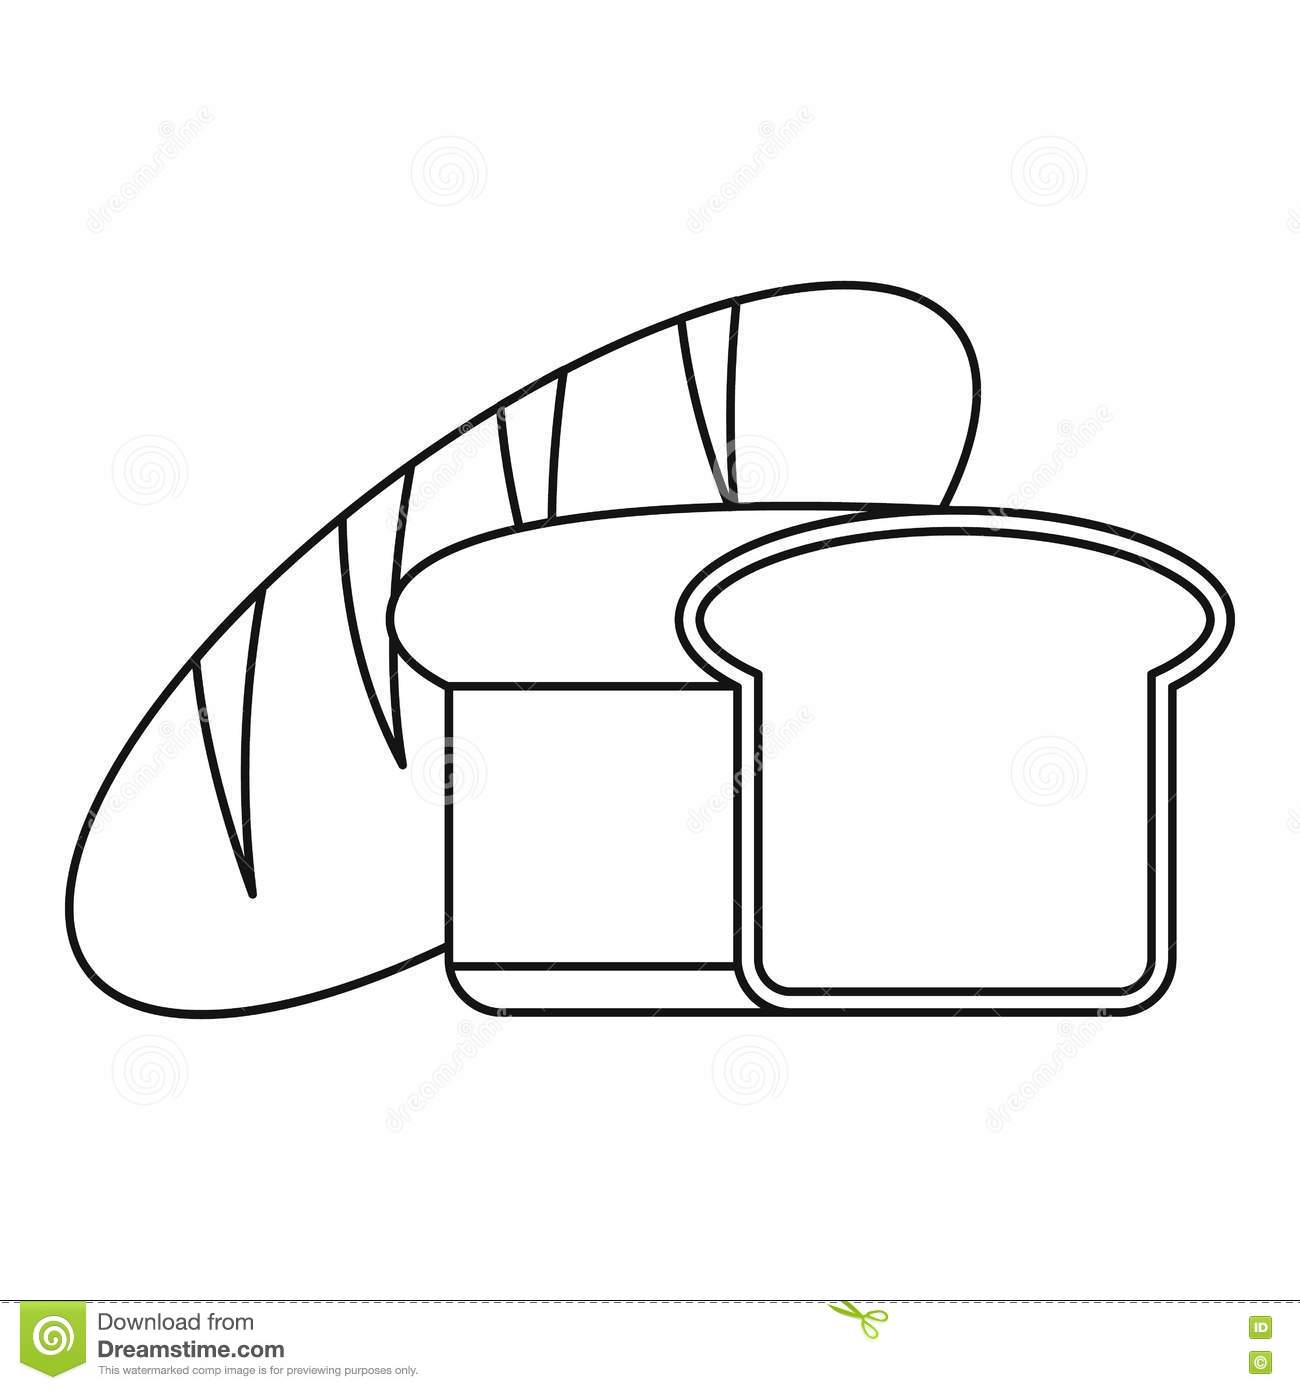 Post player Control Icon   248086 as well Clipart Ge ic Code Rna Black And White besides Pcr Icon Outline moreover Post employment Application Icon 8211 besides 326. on pipette clipart